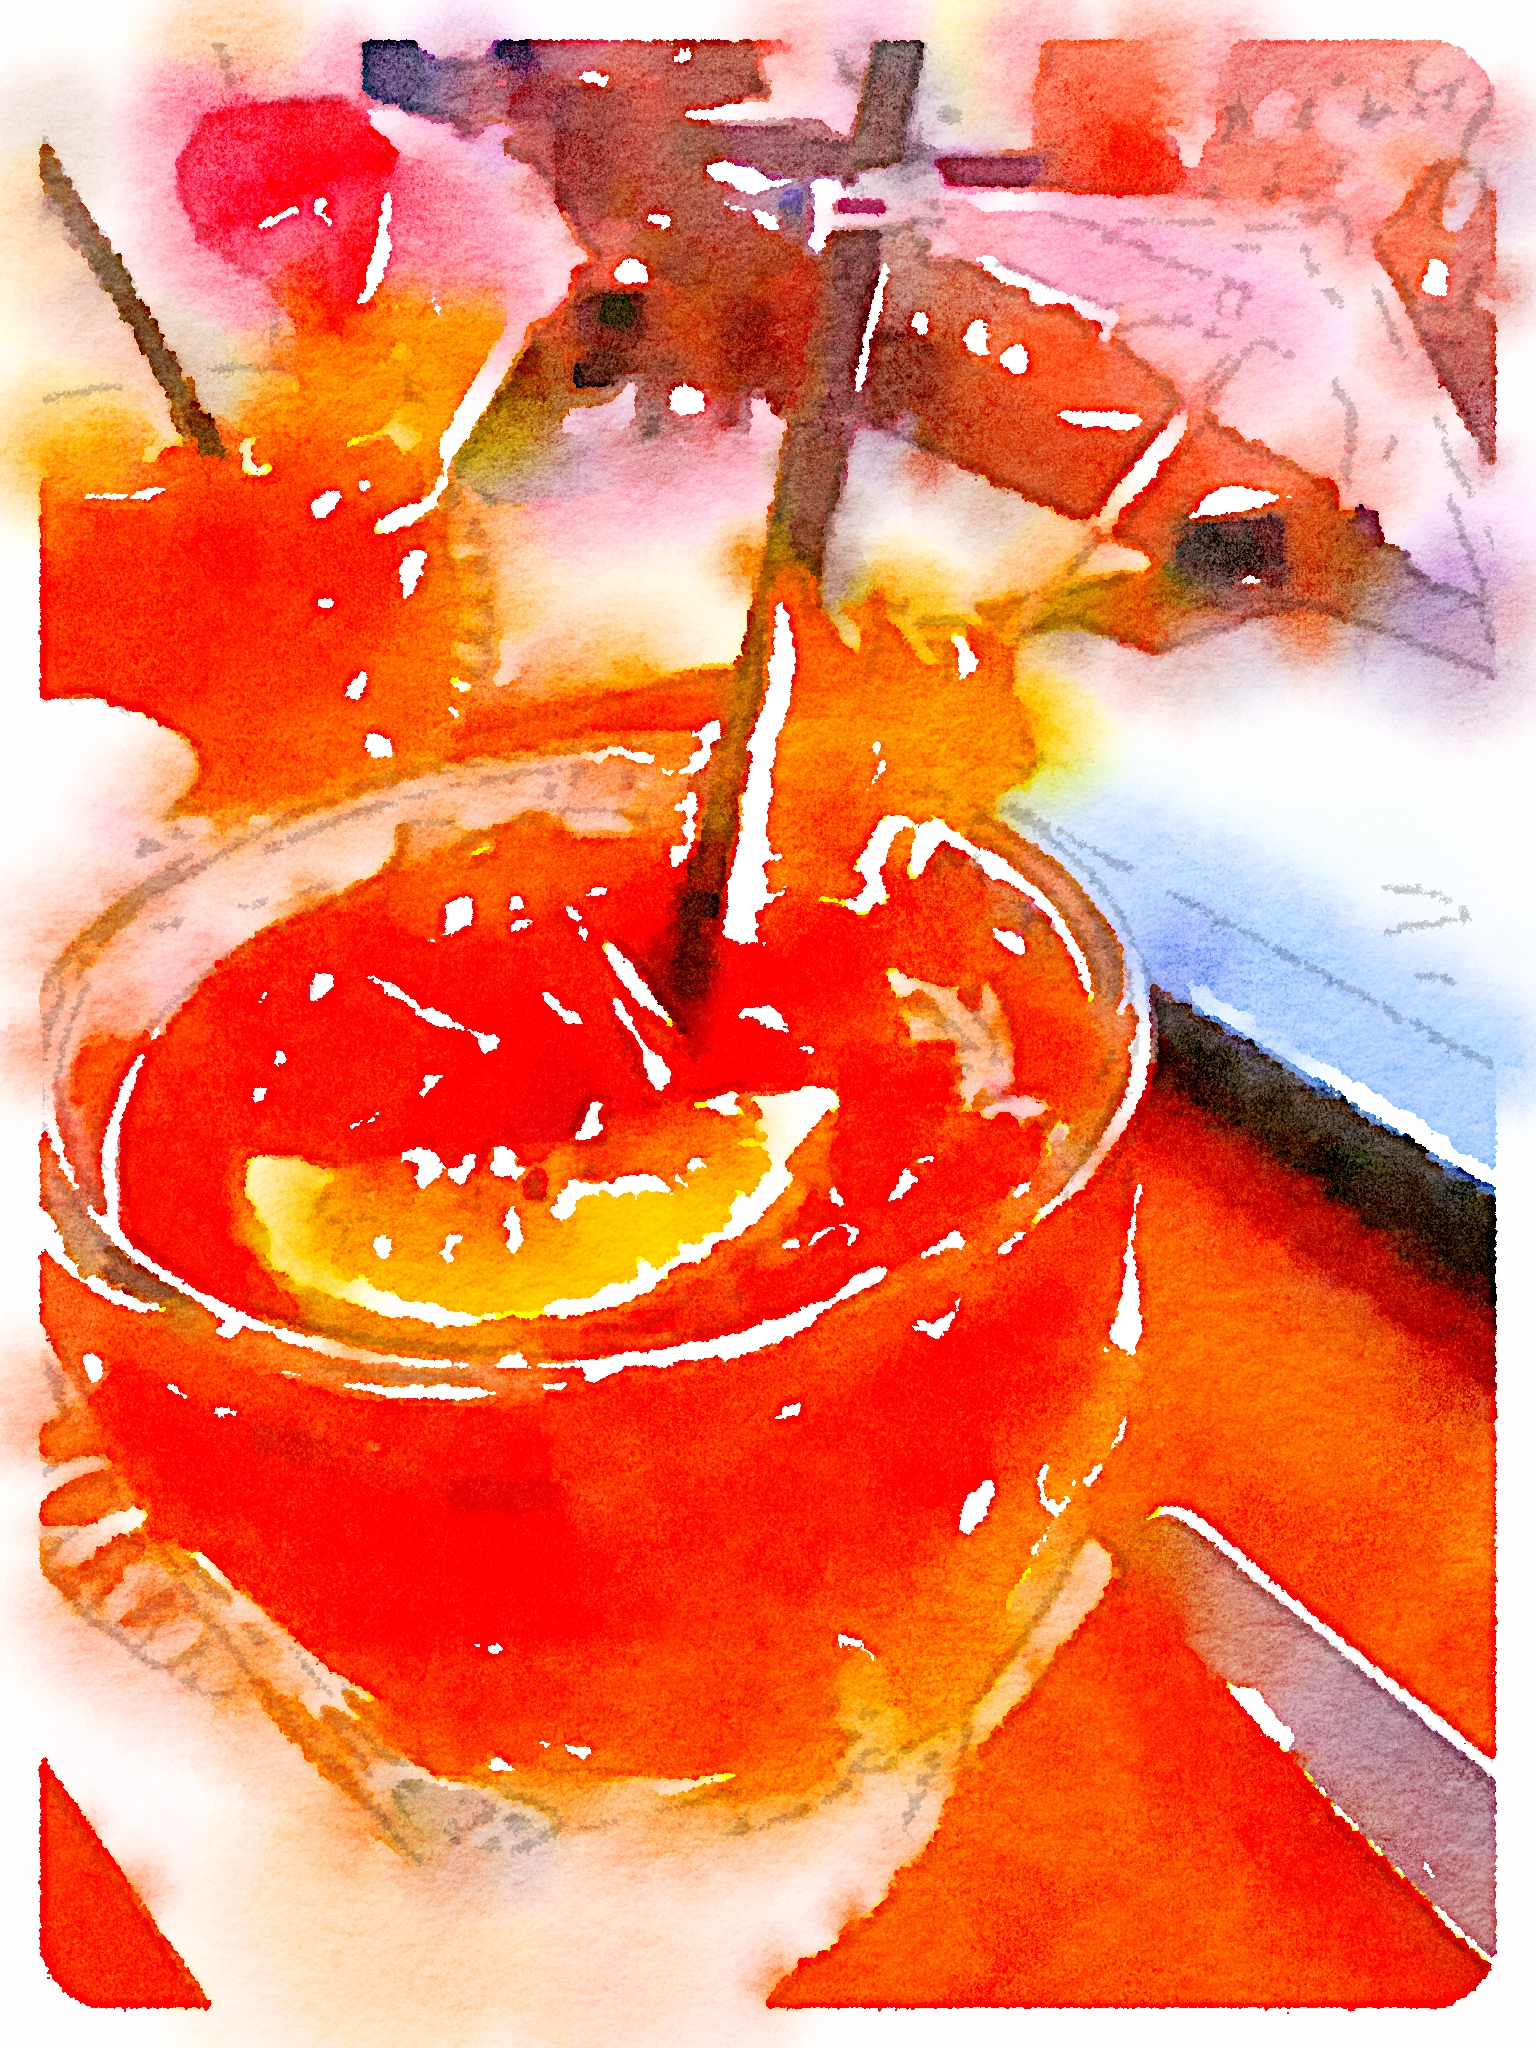 Use your own photos and create watercolor art using Waterlogue App - so fun and easy to use!!